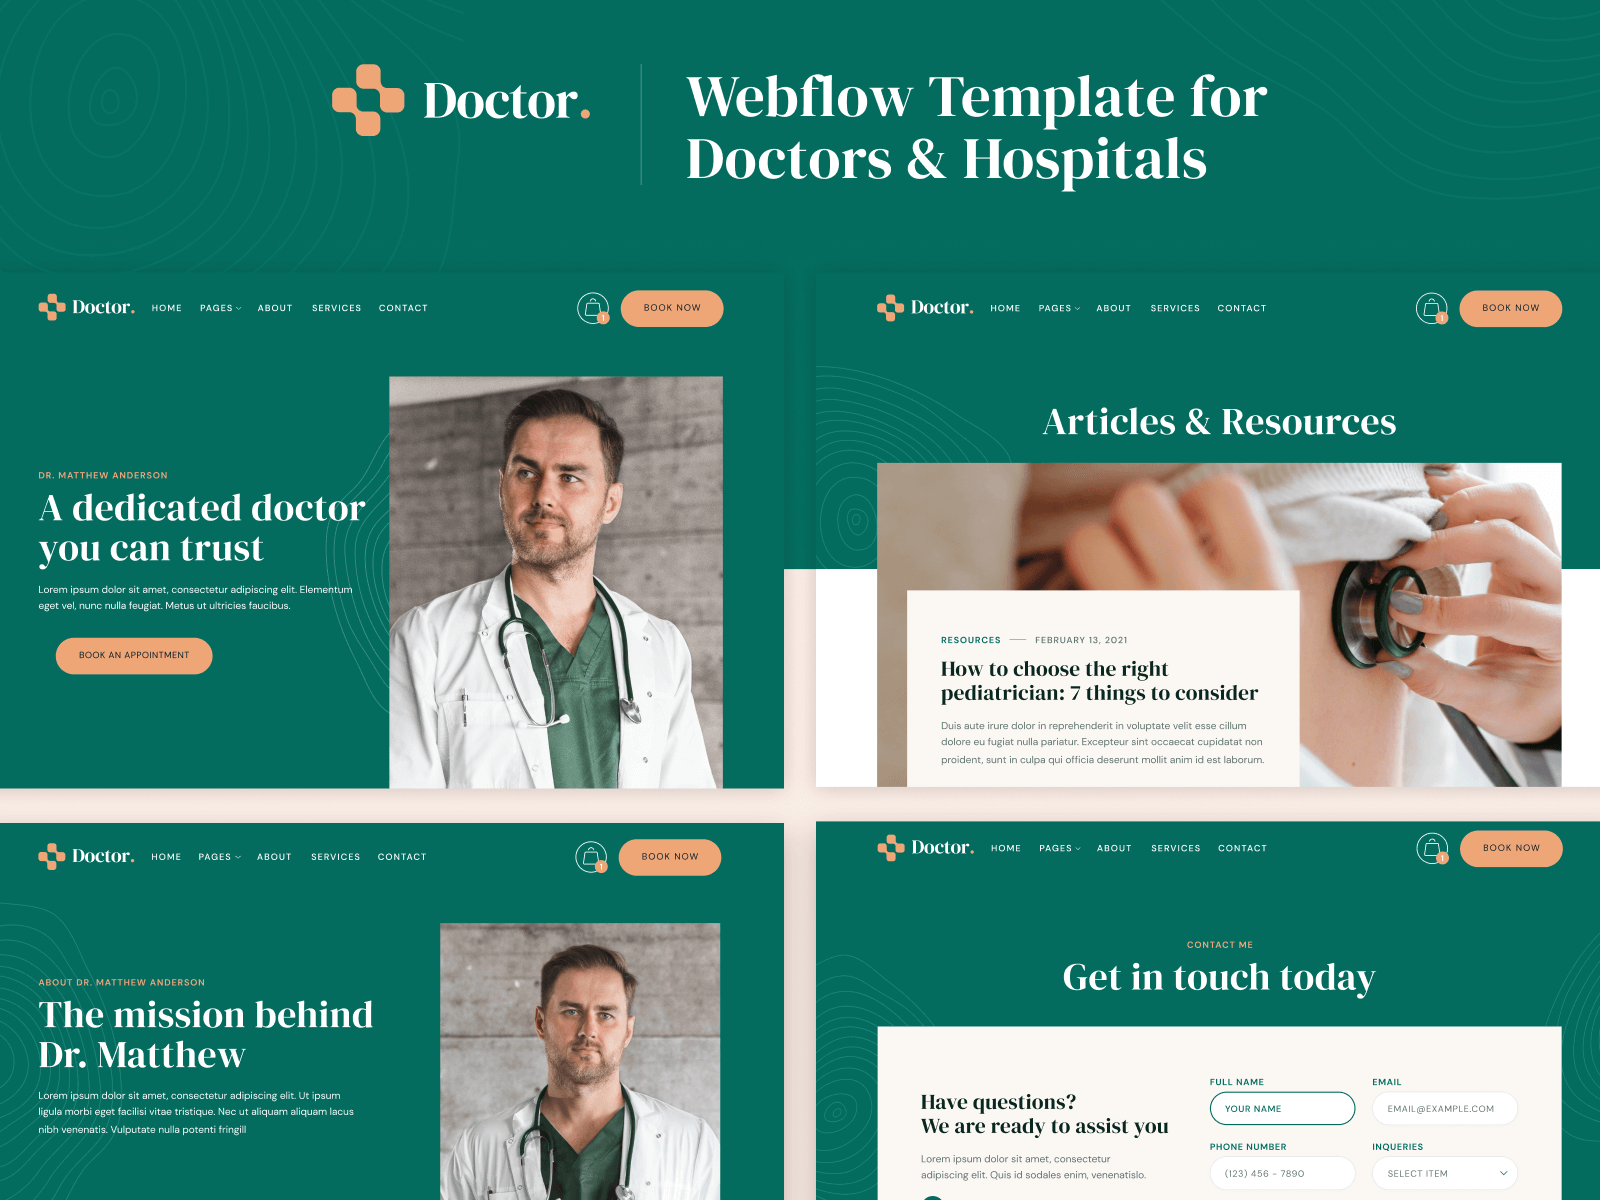 Webflow Template for Doctors